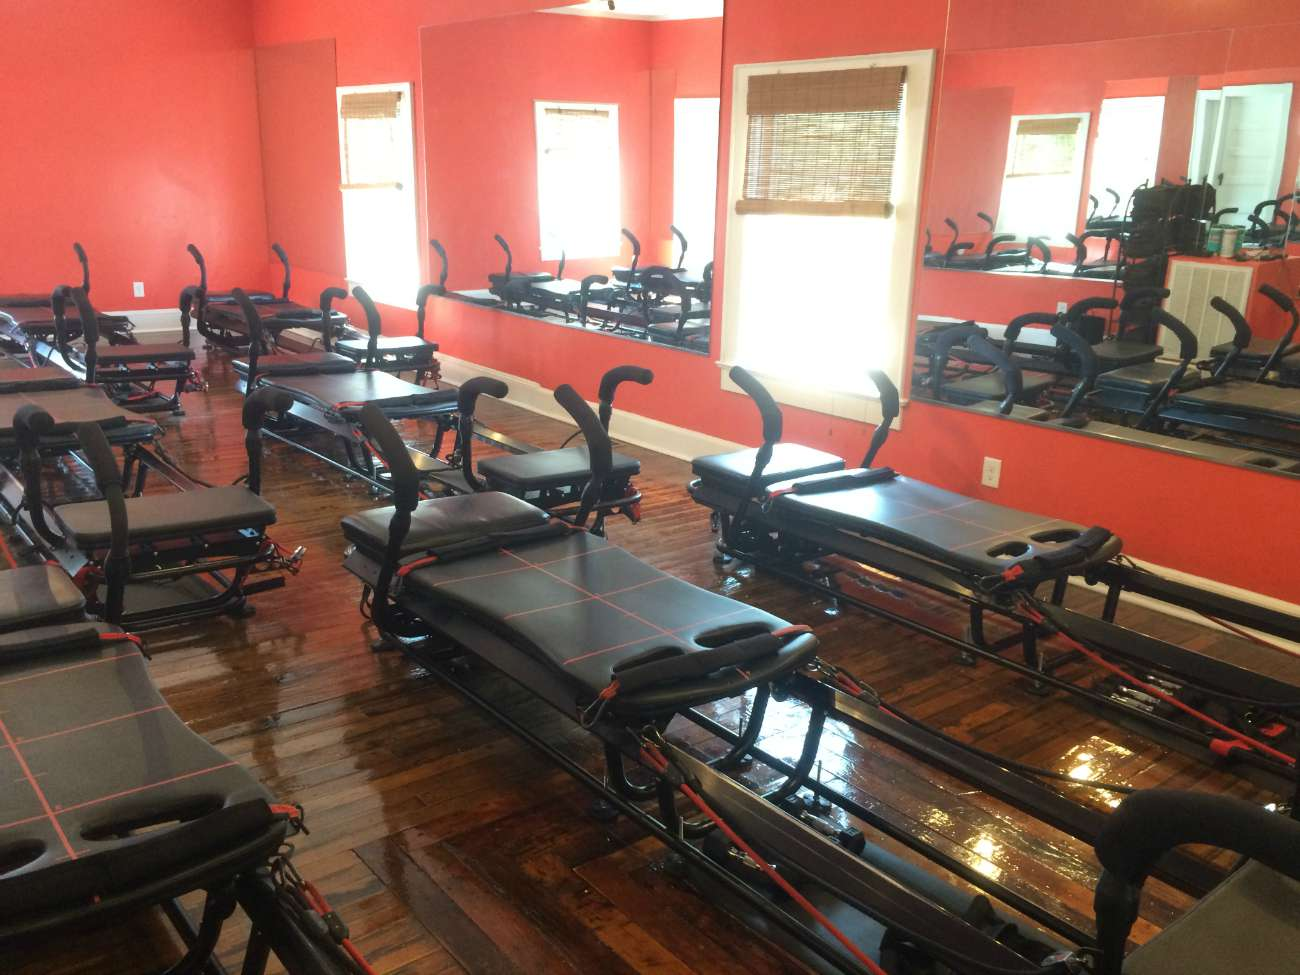 COREOLOGY Megaformer fitness studio coming to NoDa, offering free classes next week